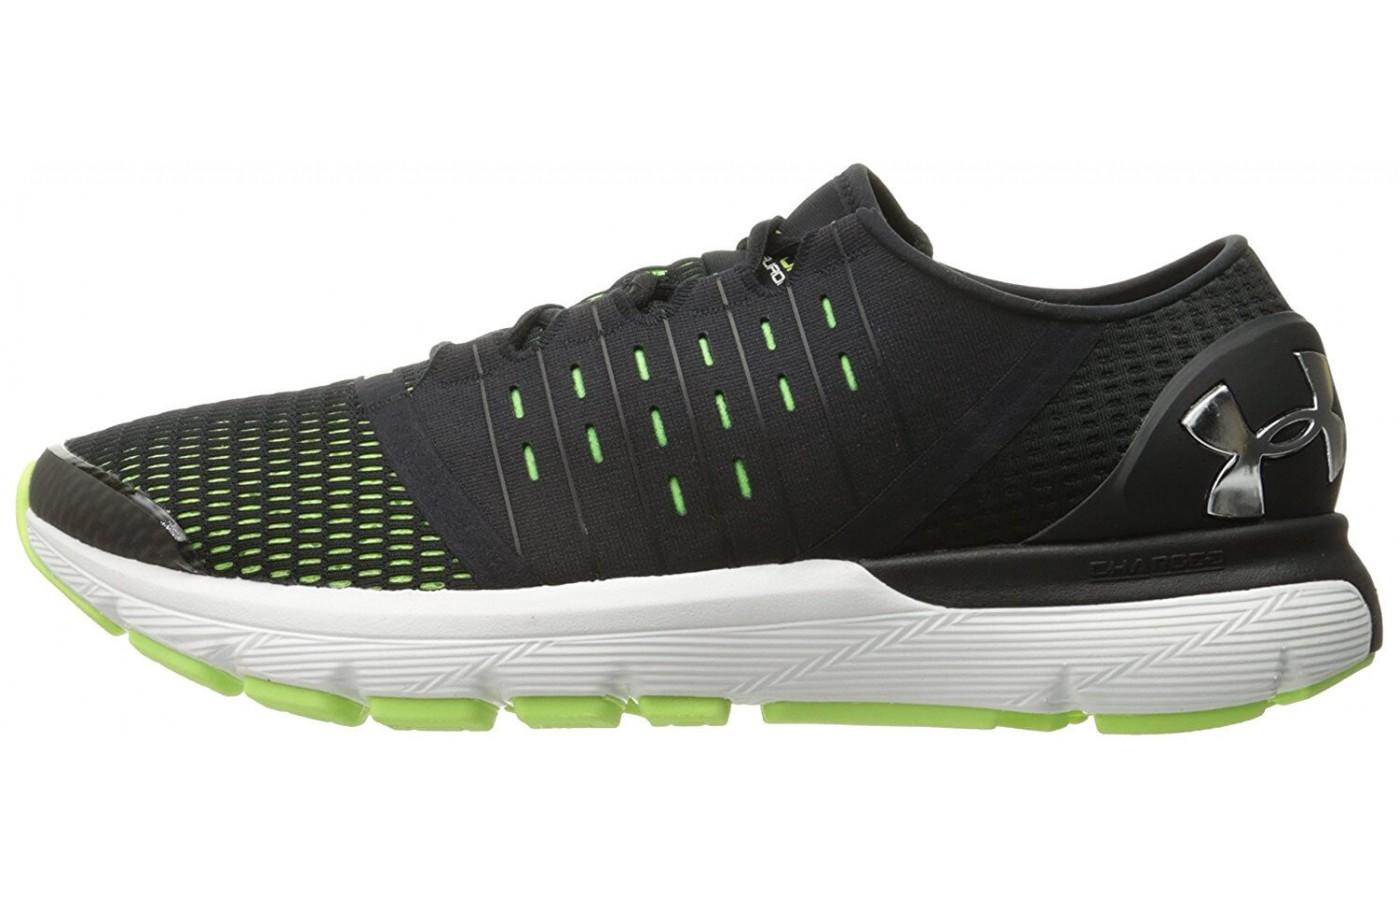 The Under Armour Speedform Europa comes in a variety of color options.